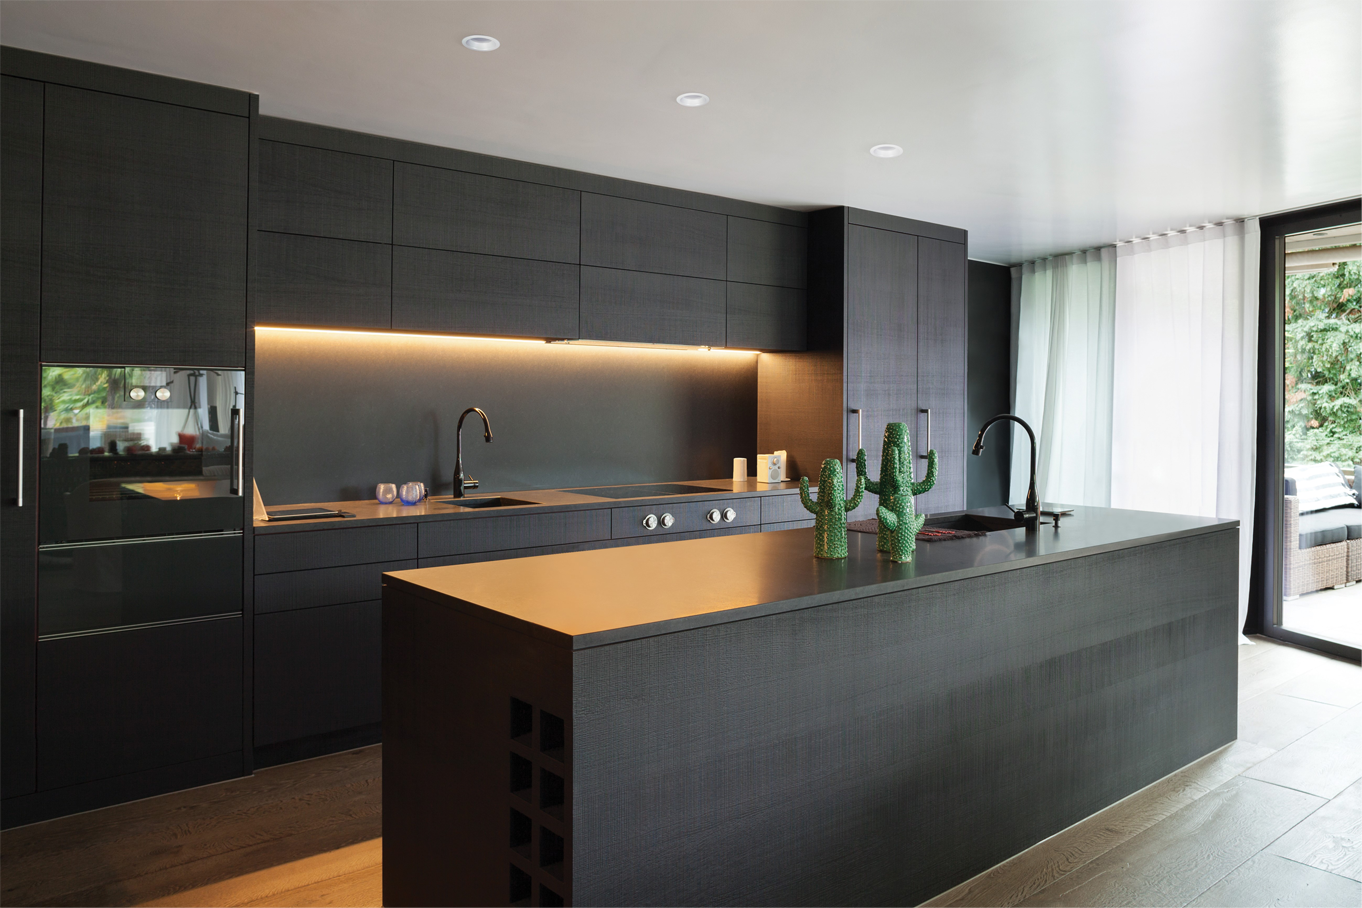 Recessed Led Lights Take Off In Kitchen Projects Builder